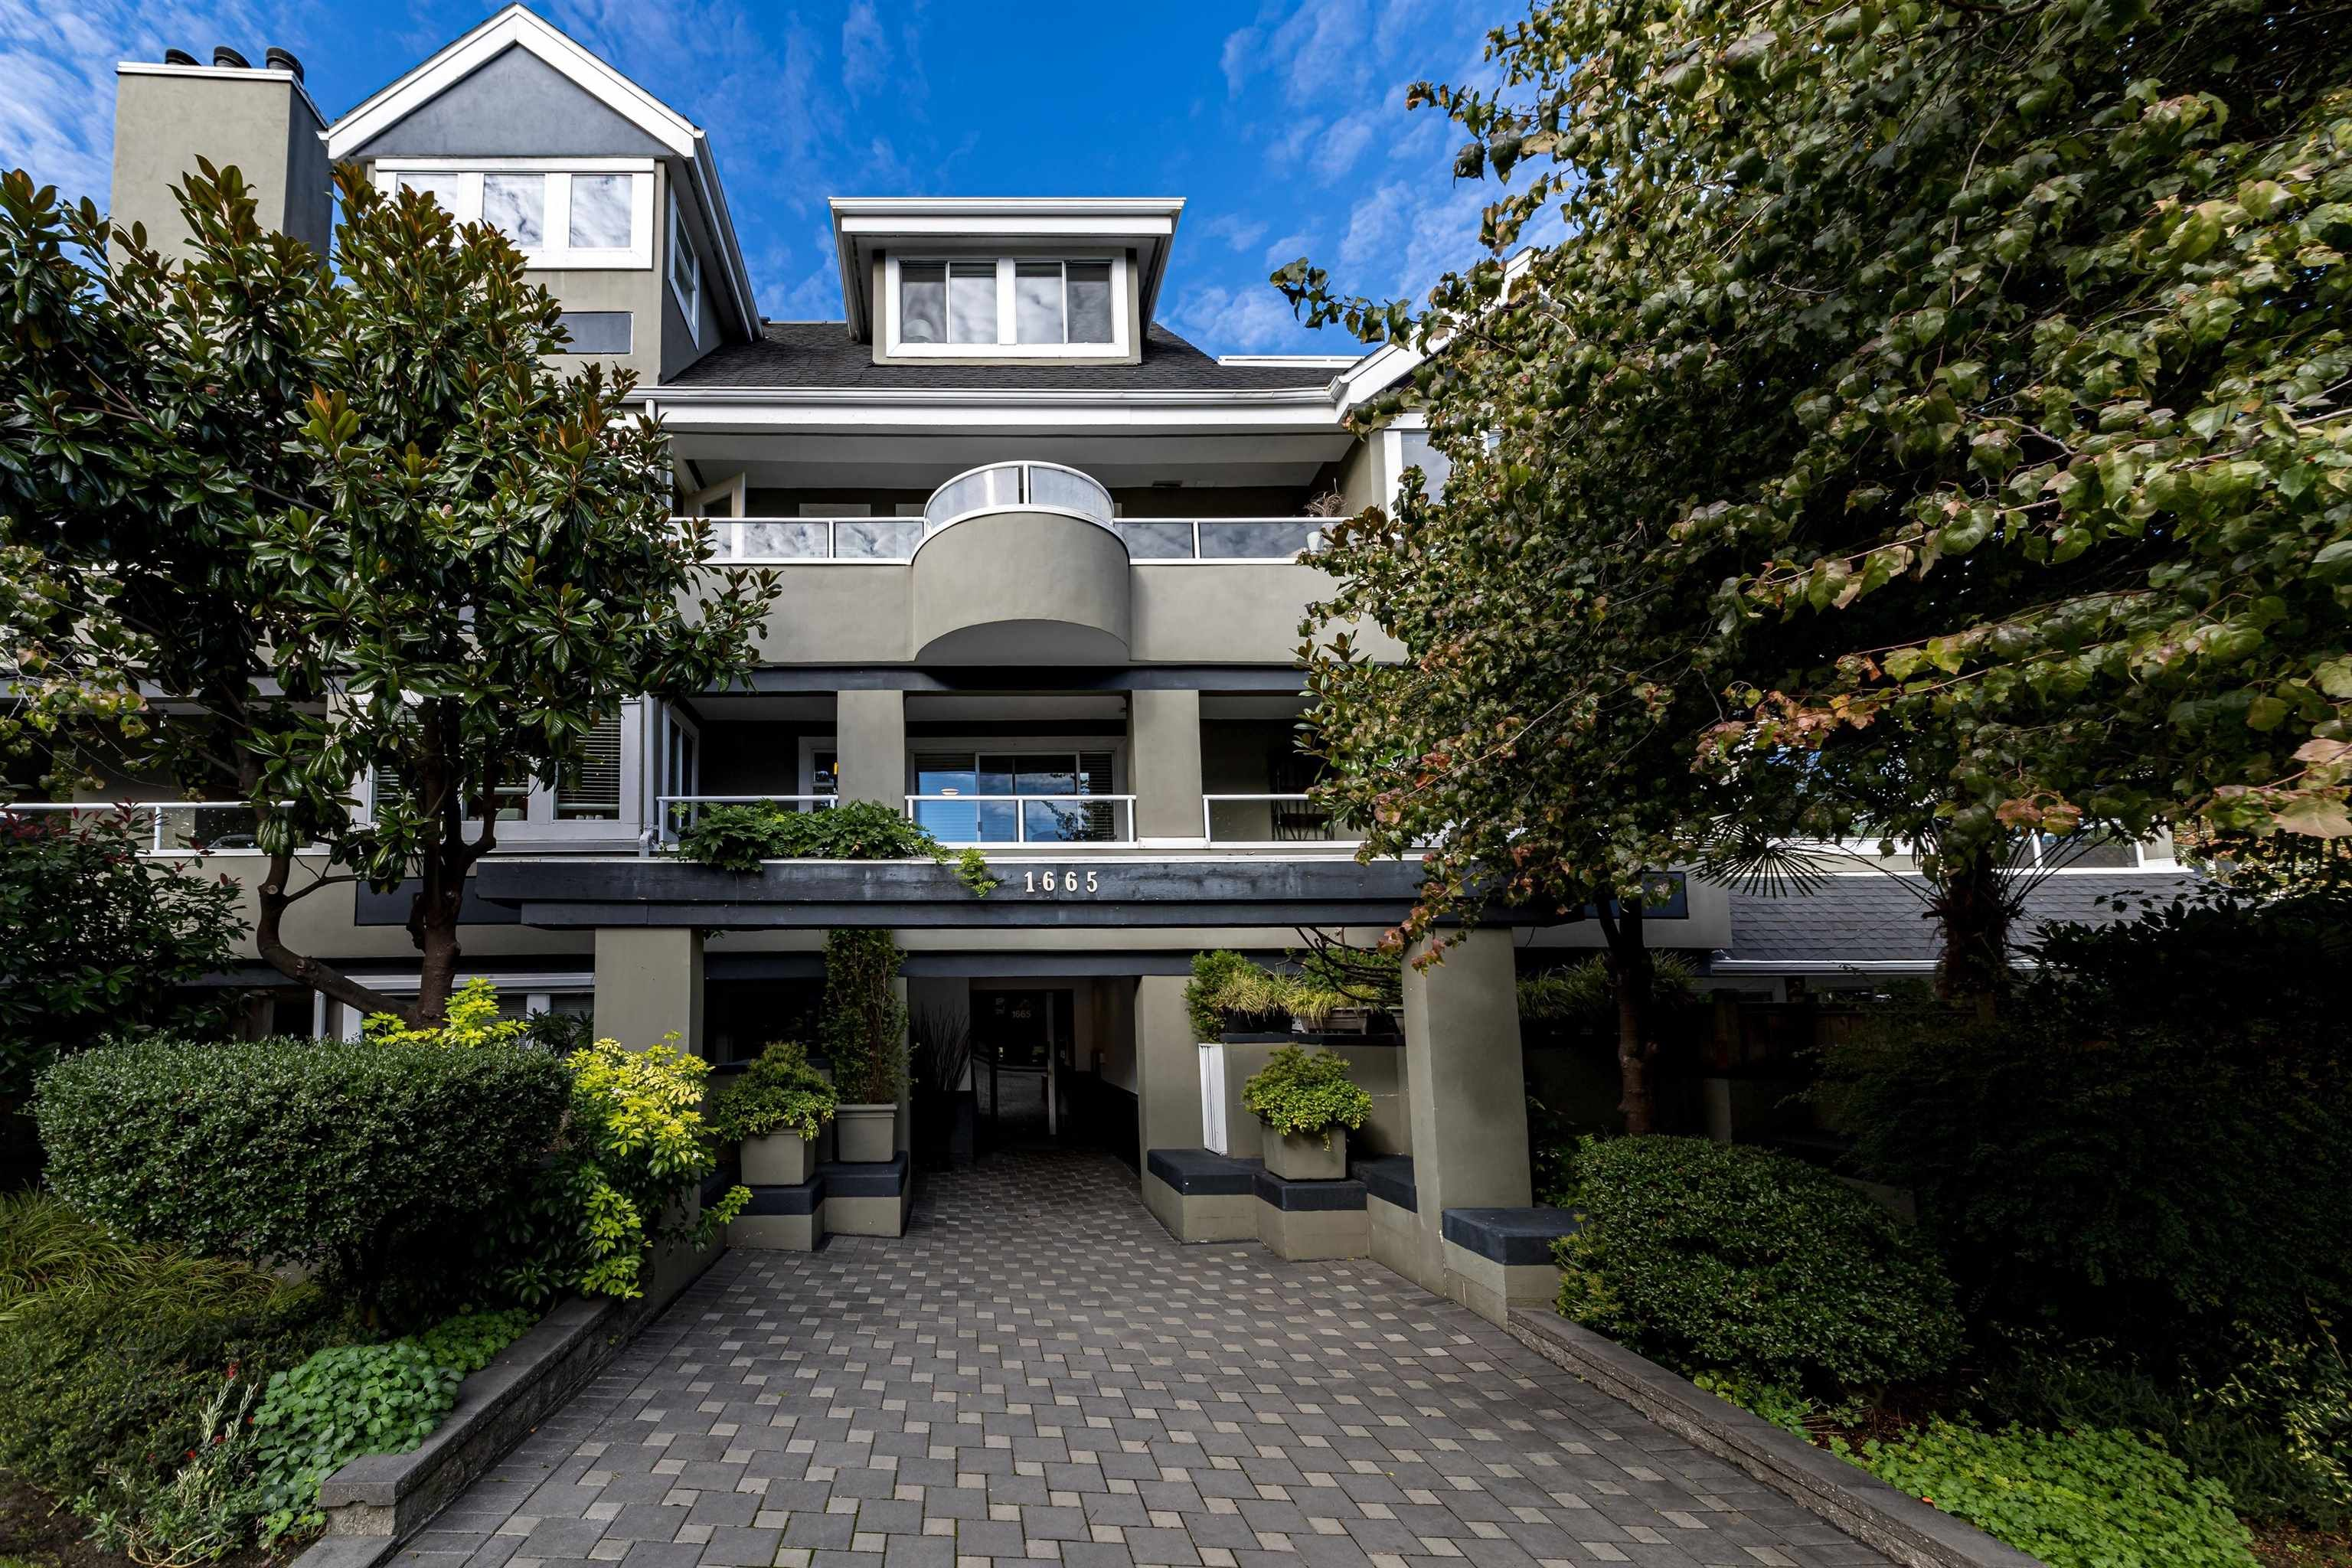 """Main Photo: 201 1665 ARBUTUS Street in Vancouver: Kitsilano Condo for sale in """"The Beaches"""" (Vancouver West)  : MLS®# R2620852"""